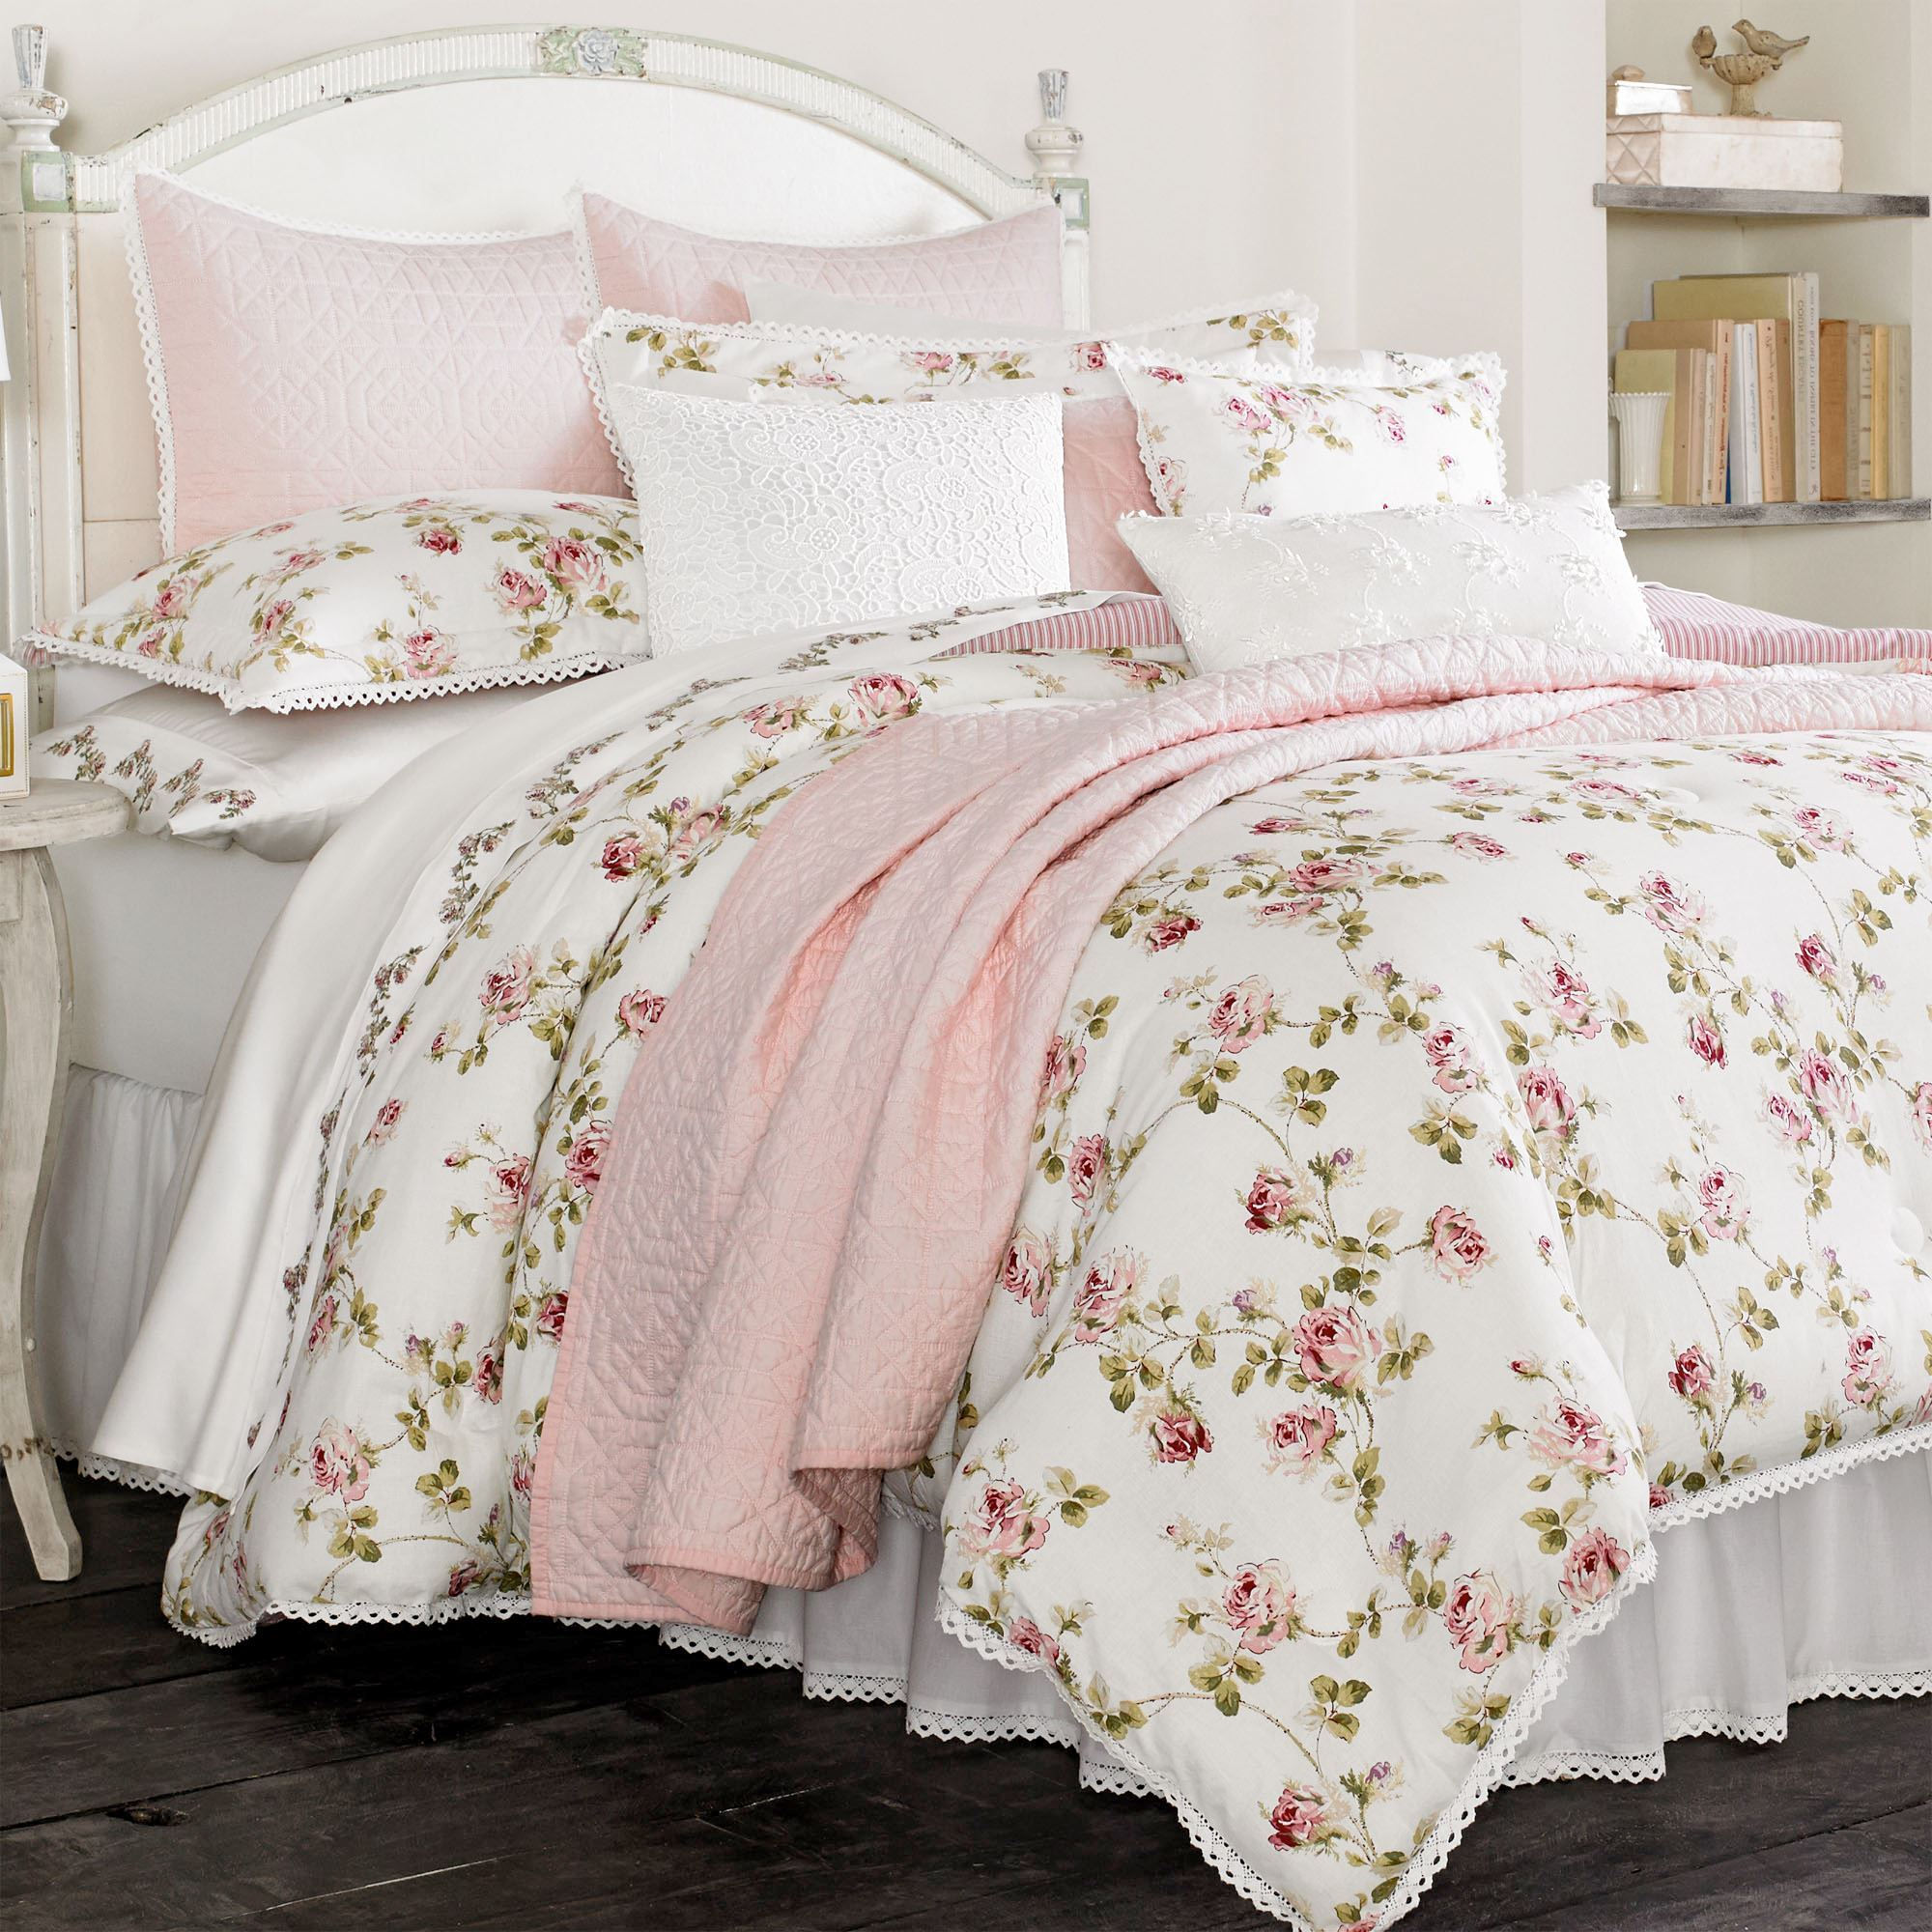 vintage full home ralph comforters comforter com amazon queen kitchen duvet layla lauren amagansett cover sage dp floral